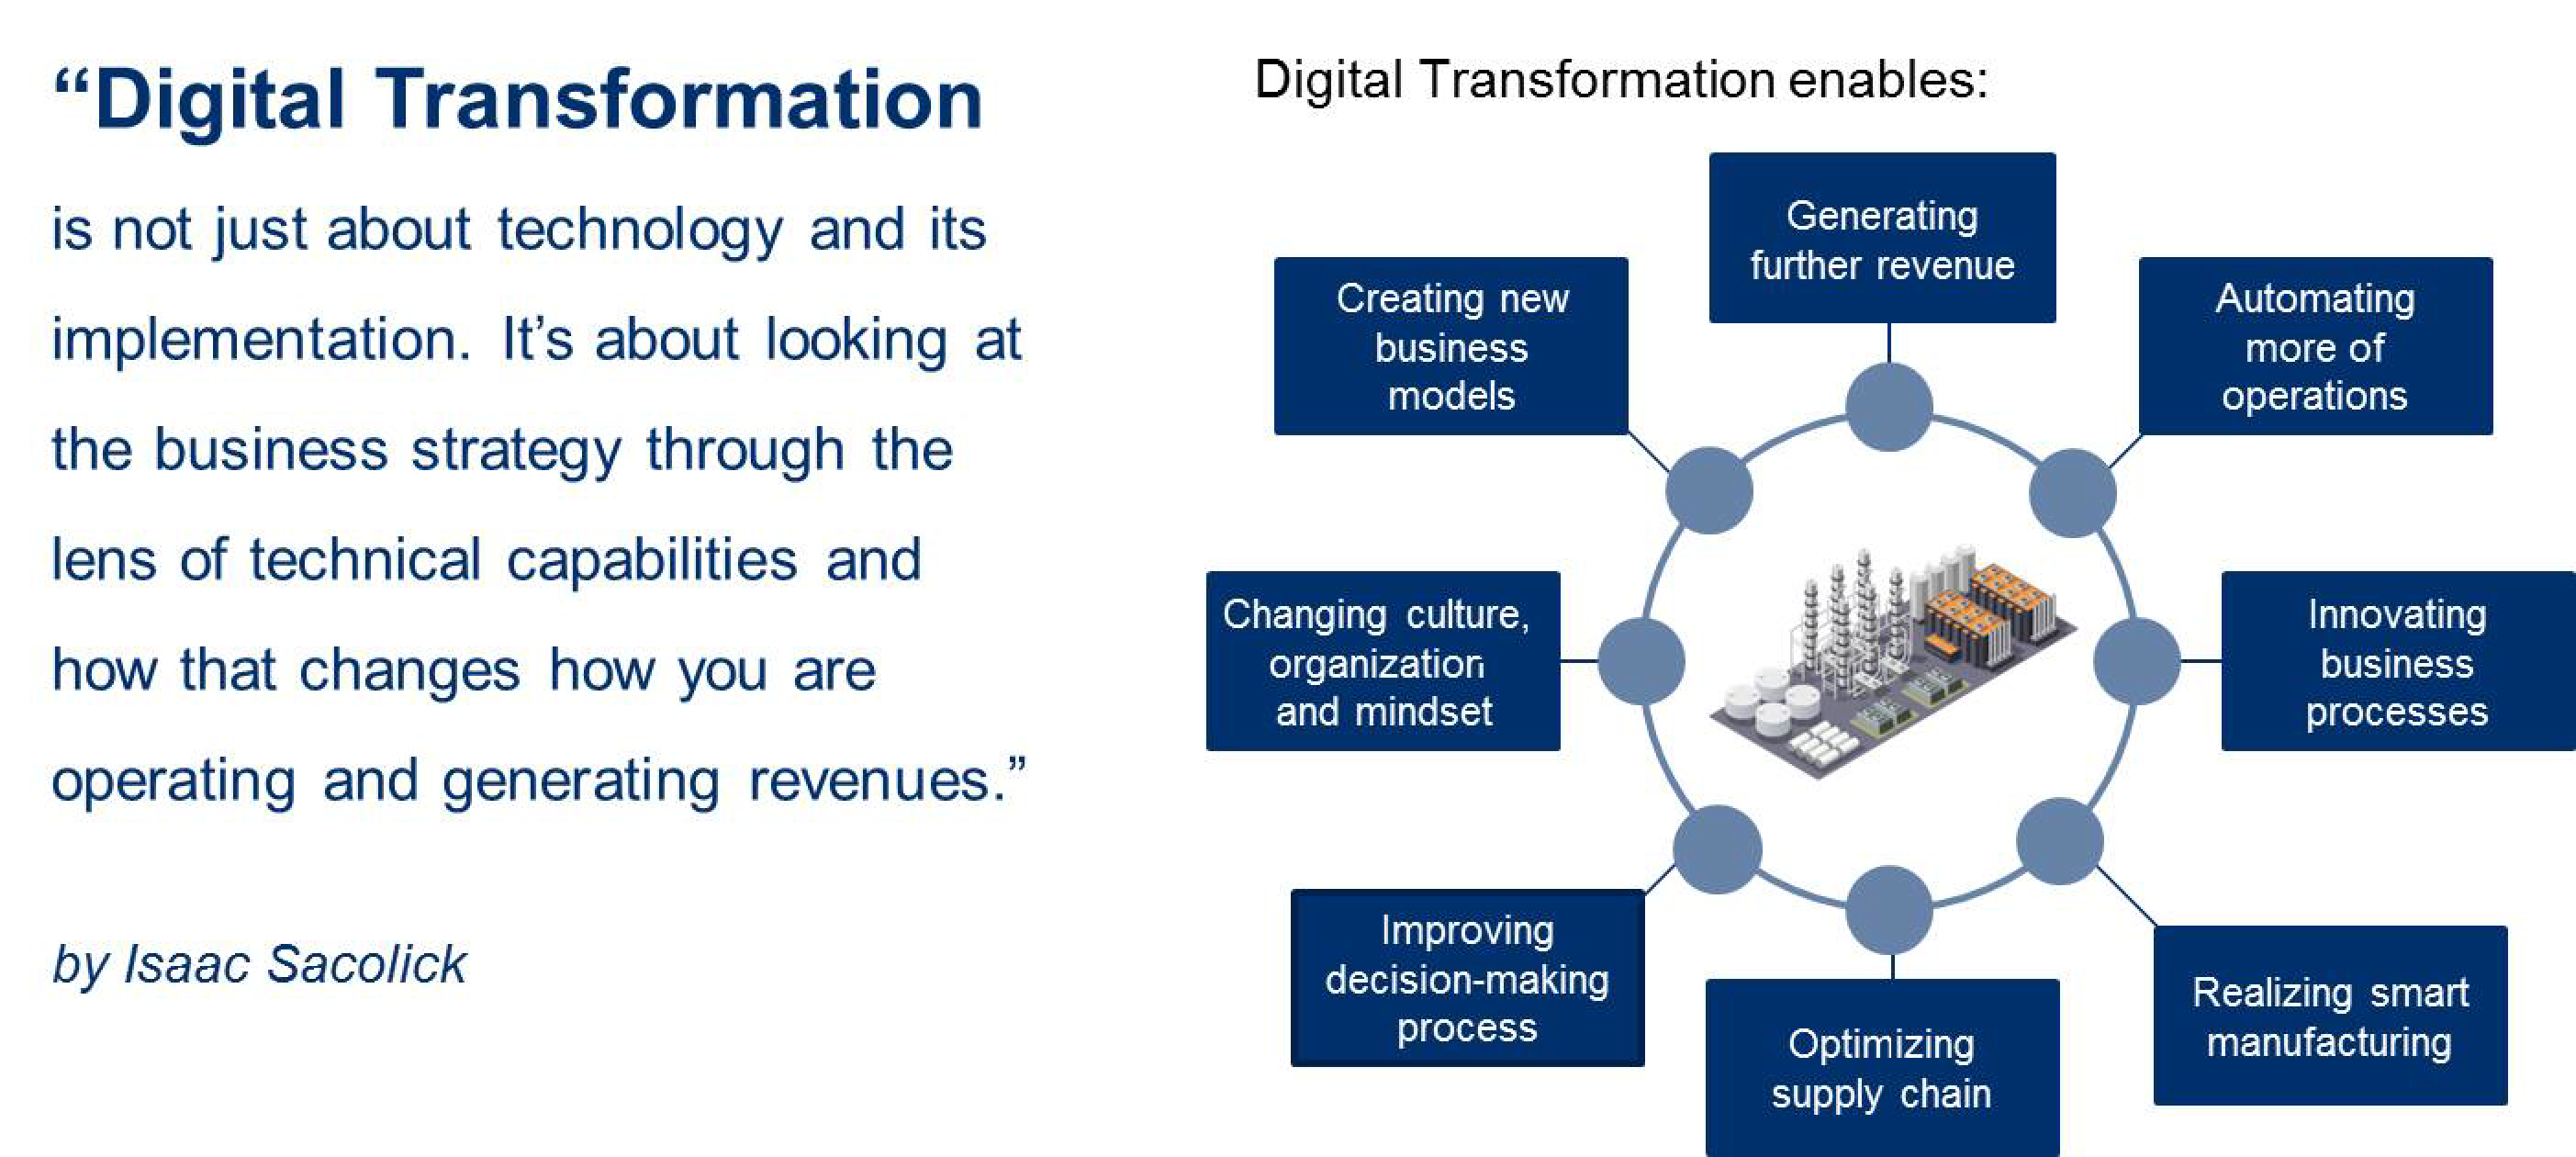 Digital Transformation across value-stream